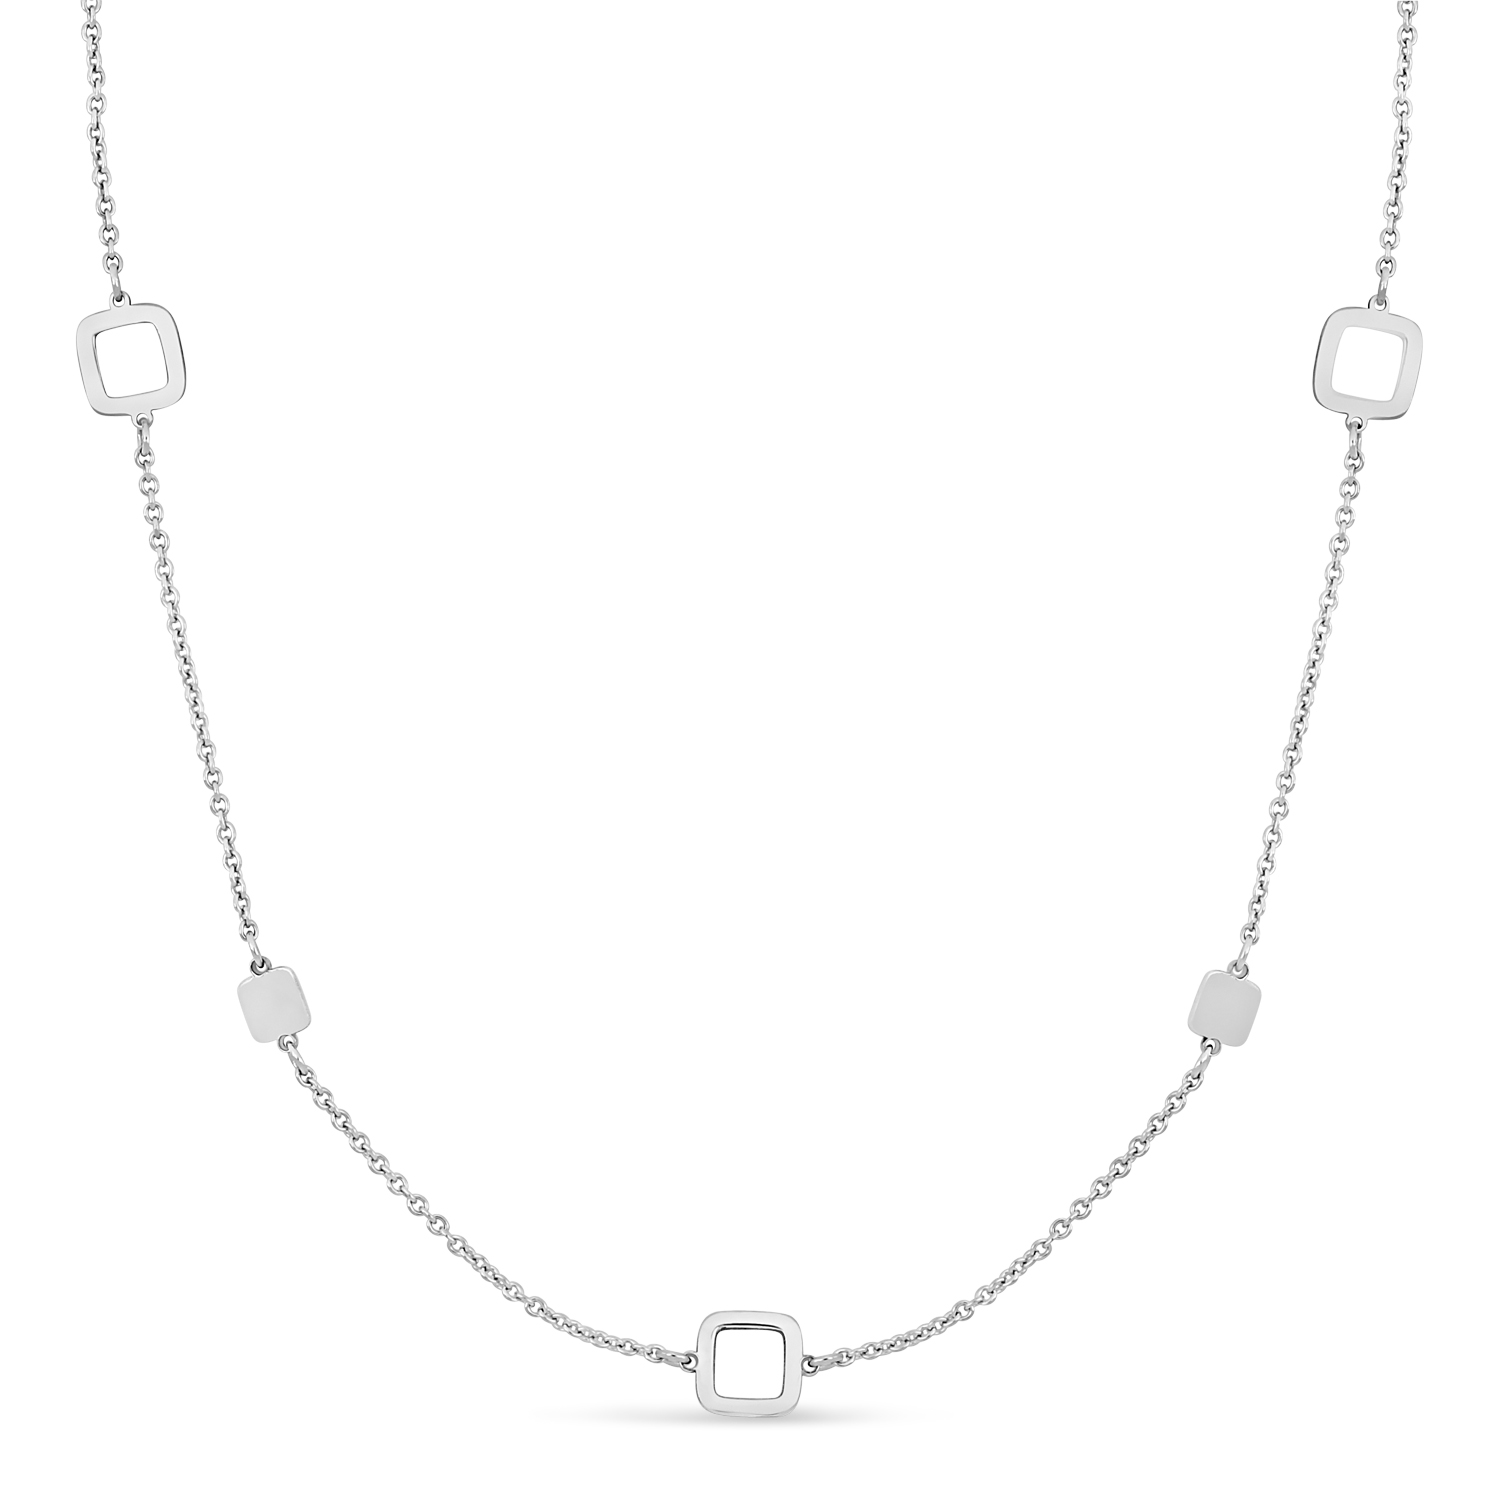 Fancy Squares Necklace 18k White Gold